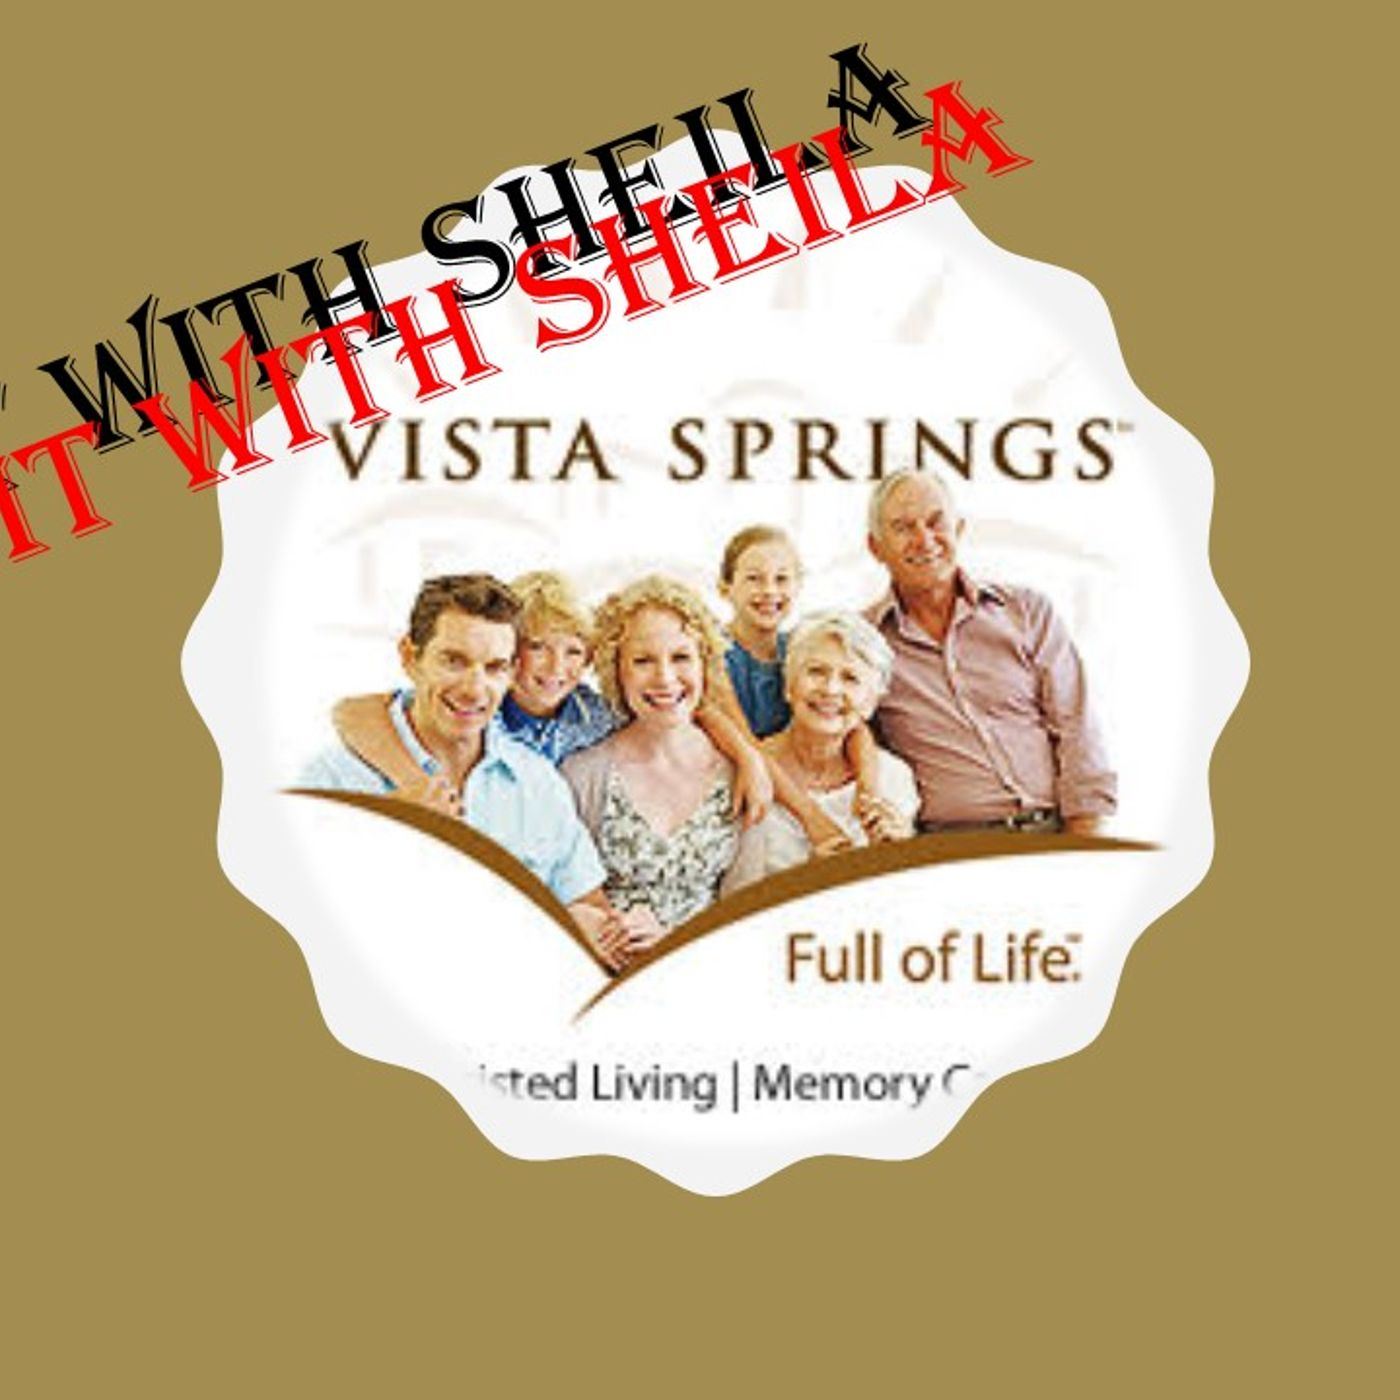 vista-springs-_-whats-new-with-sheila-james-10_2_18